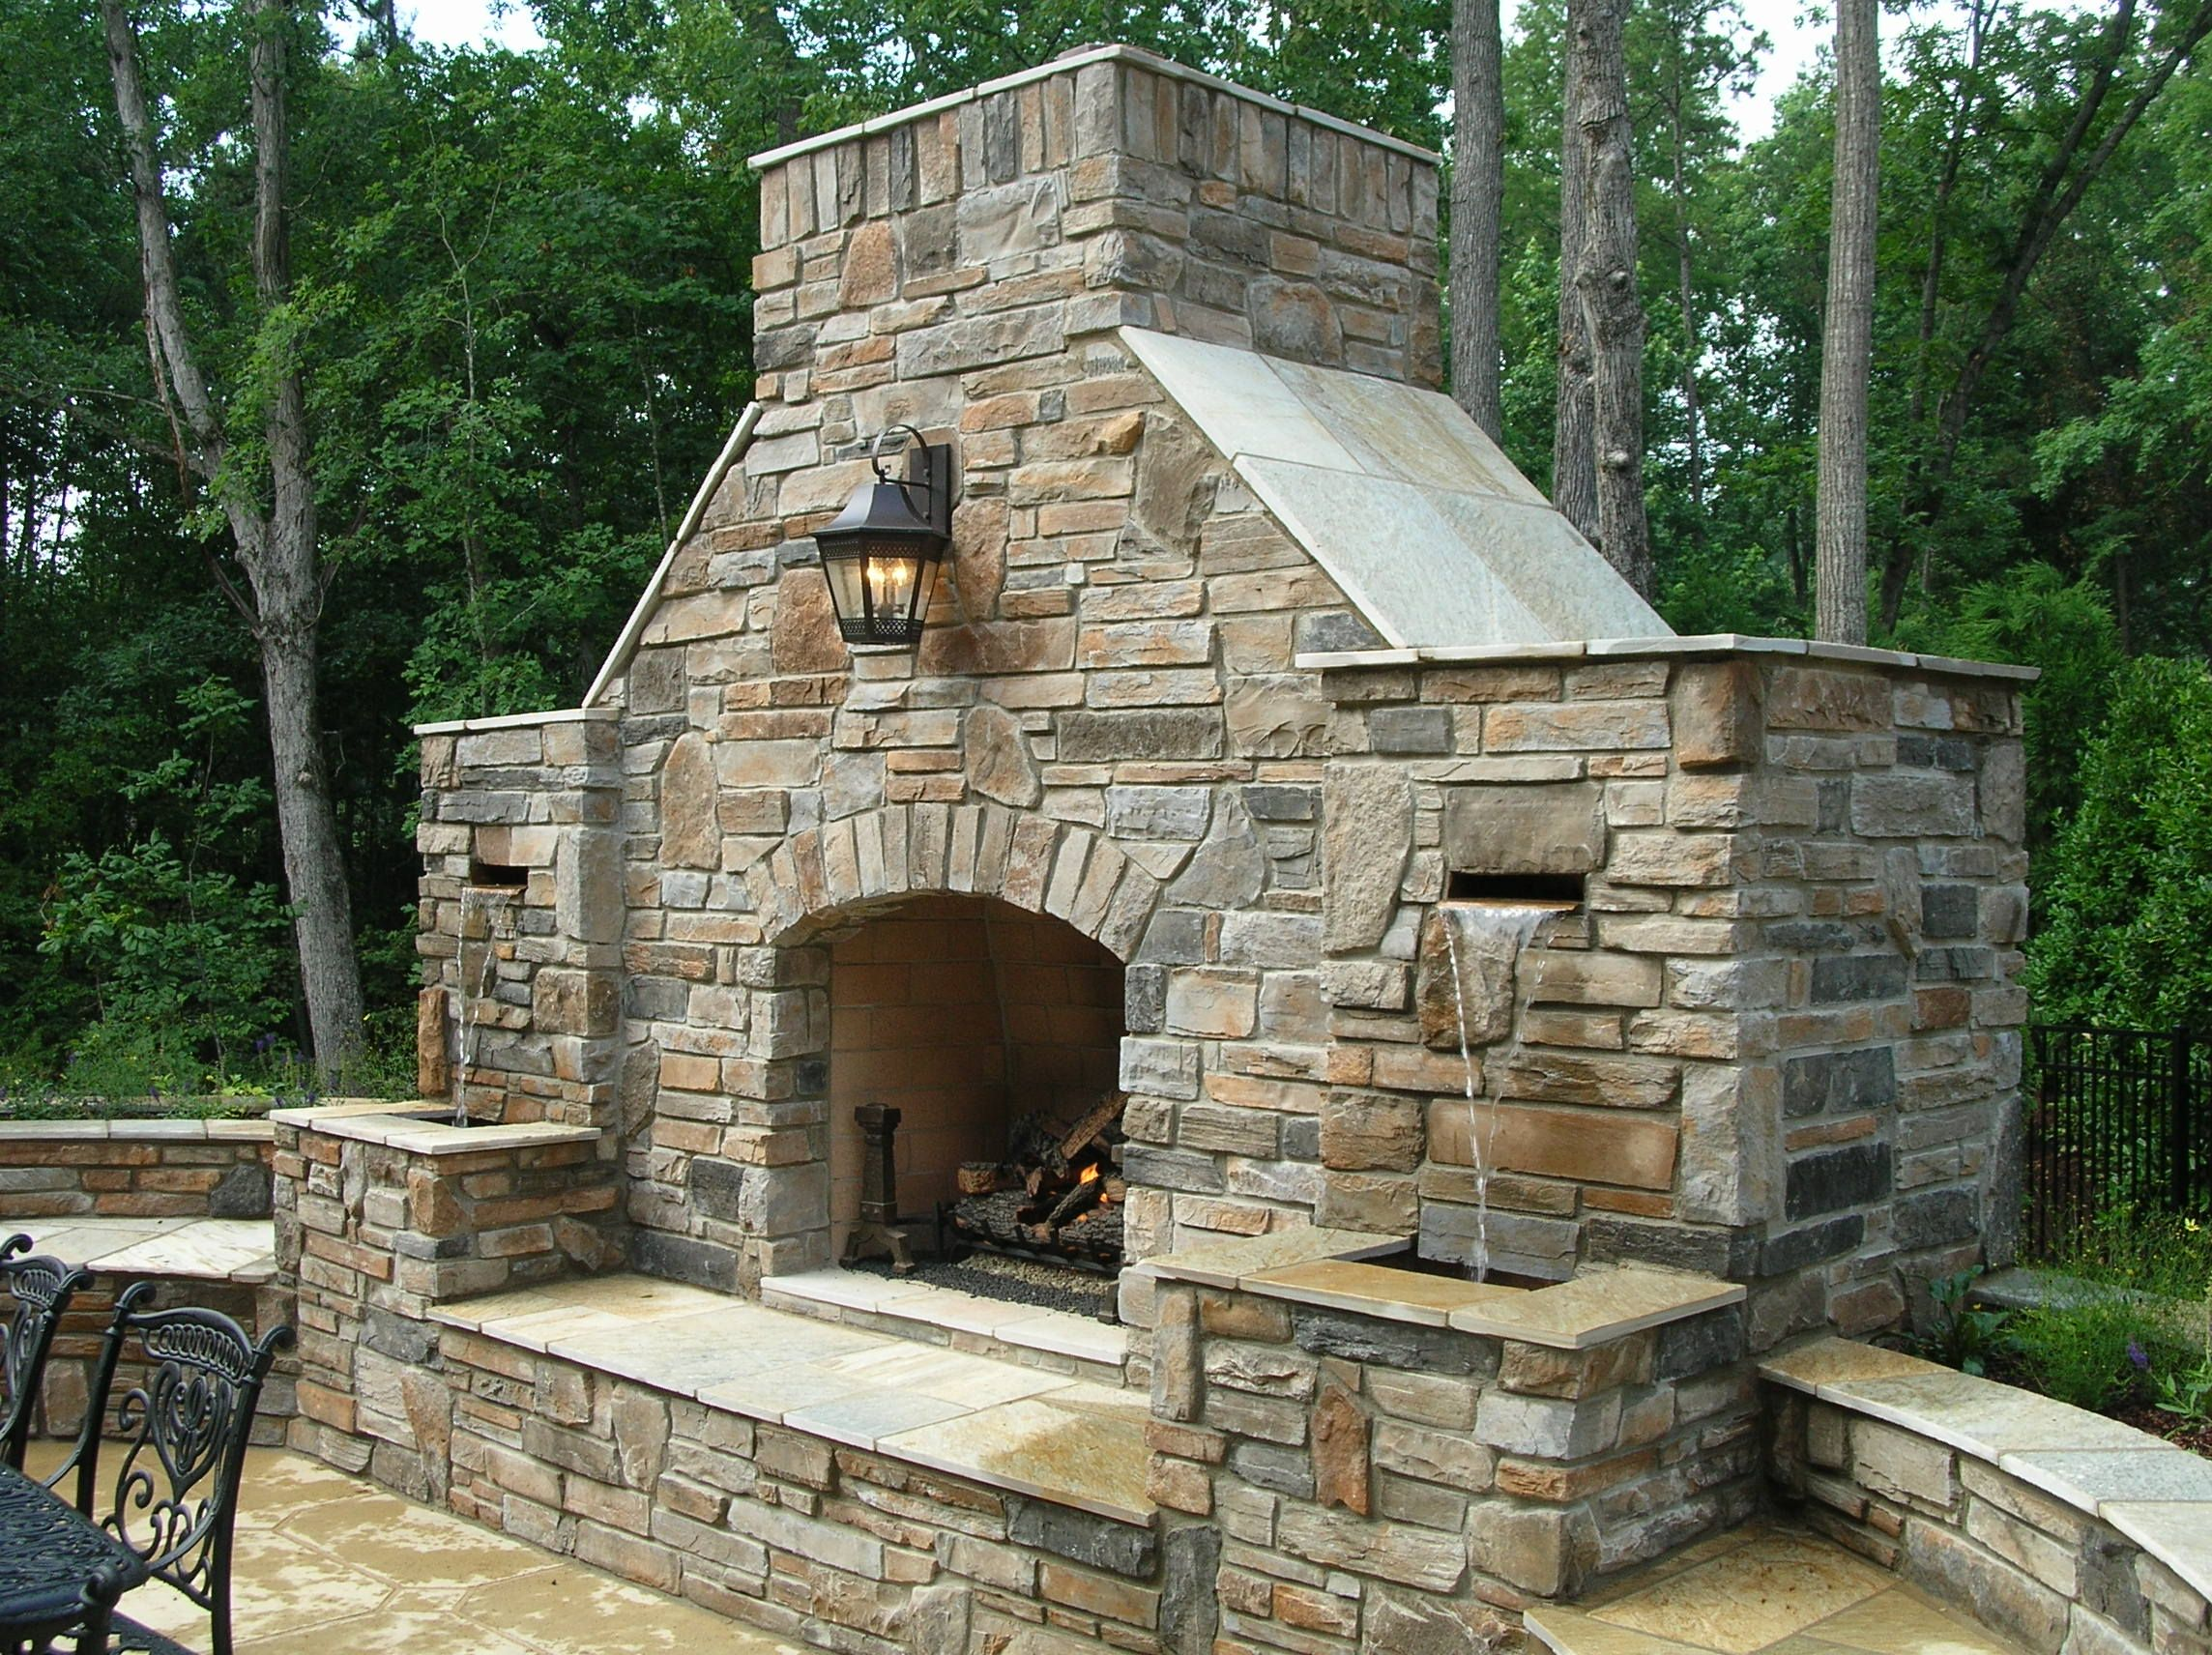 Combination outdoor fireplace and water fountain outdoor for Outdoor fireplace designs plans